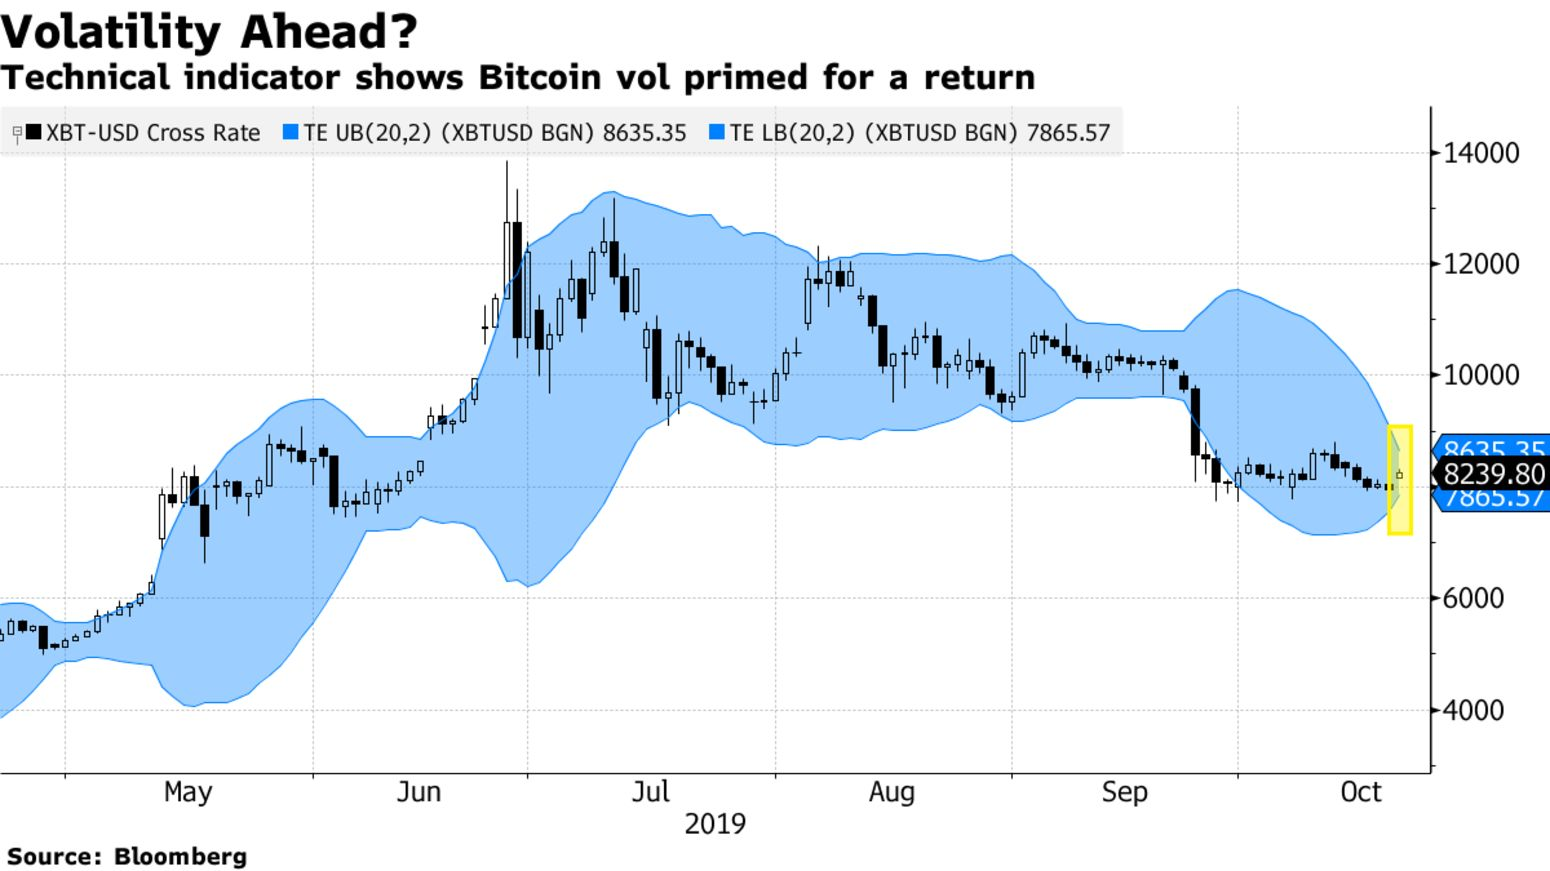 Technical indicator shows Bitcoin vol primed for a return